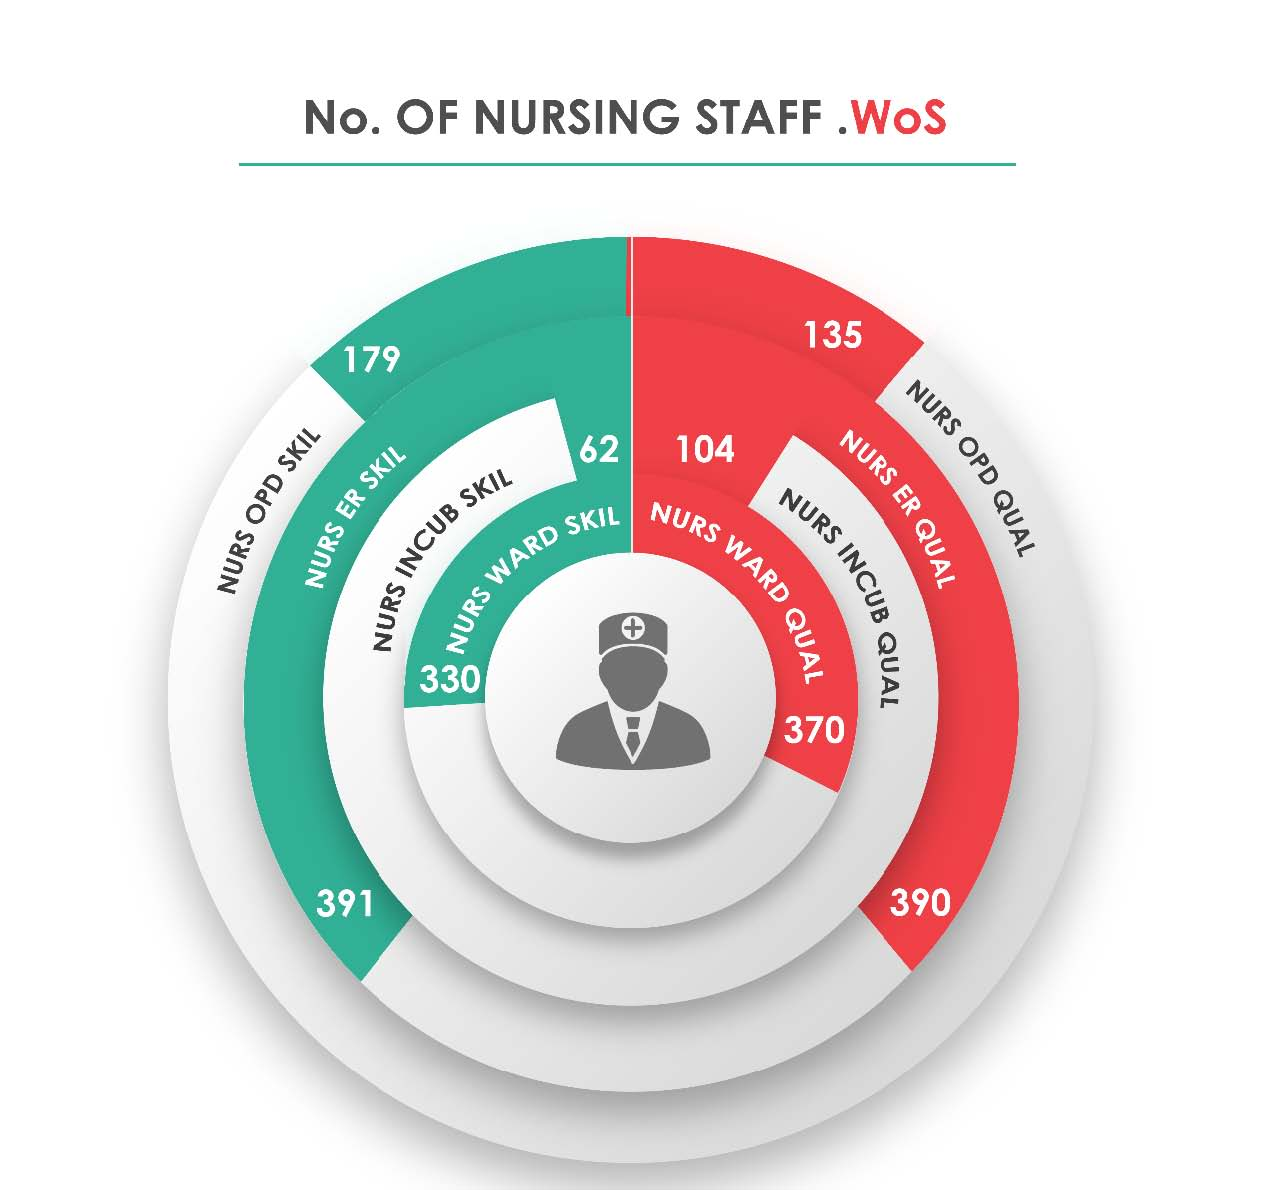 Fig._27.0_Human_Resources_Nursing_Staff__Whole_of_Syria.jpg